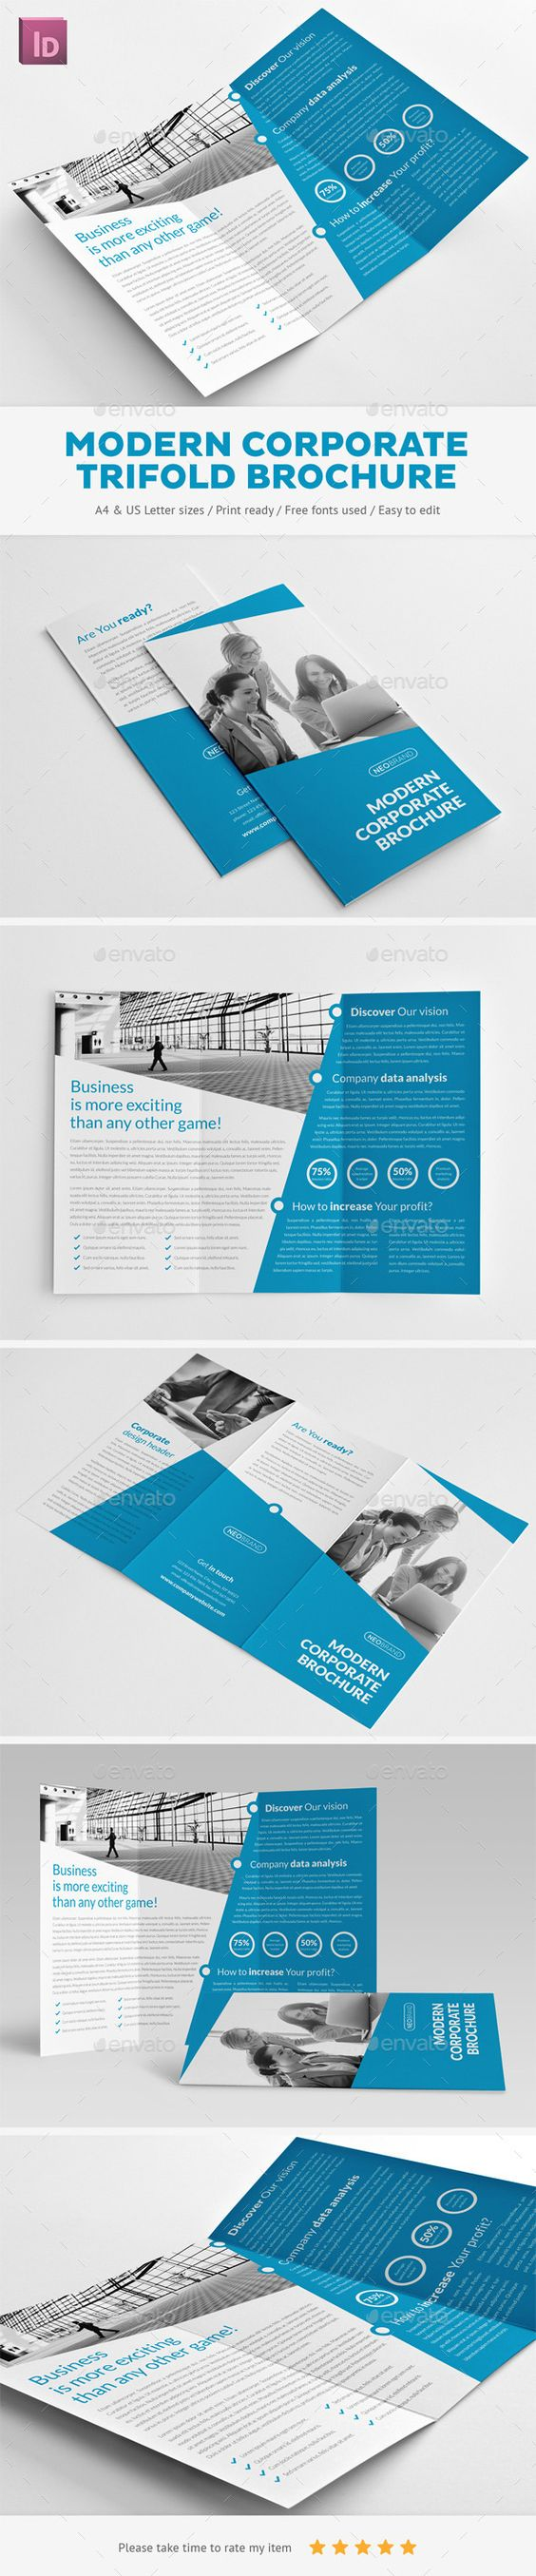 Highly Editable Trifold InDesign Brochure Template Easy To - Indesign trifold brochure template